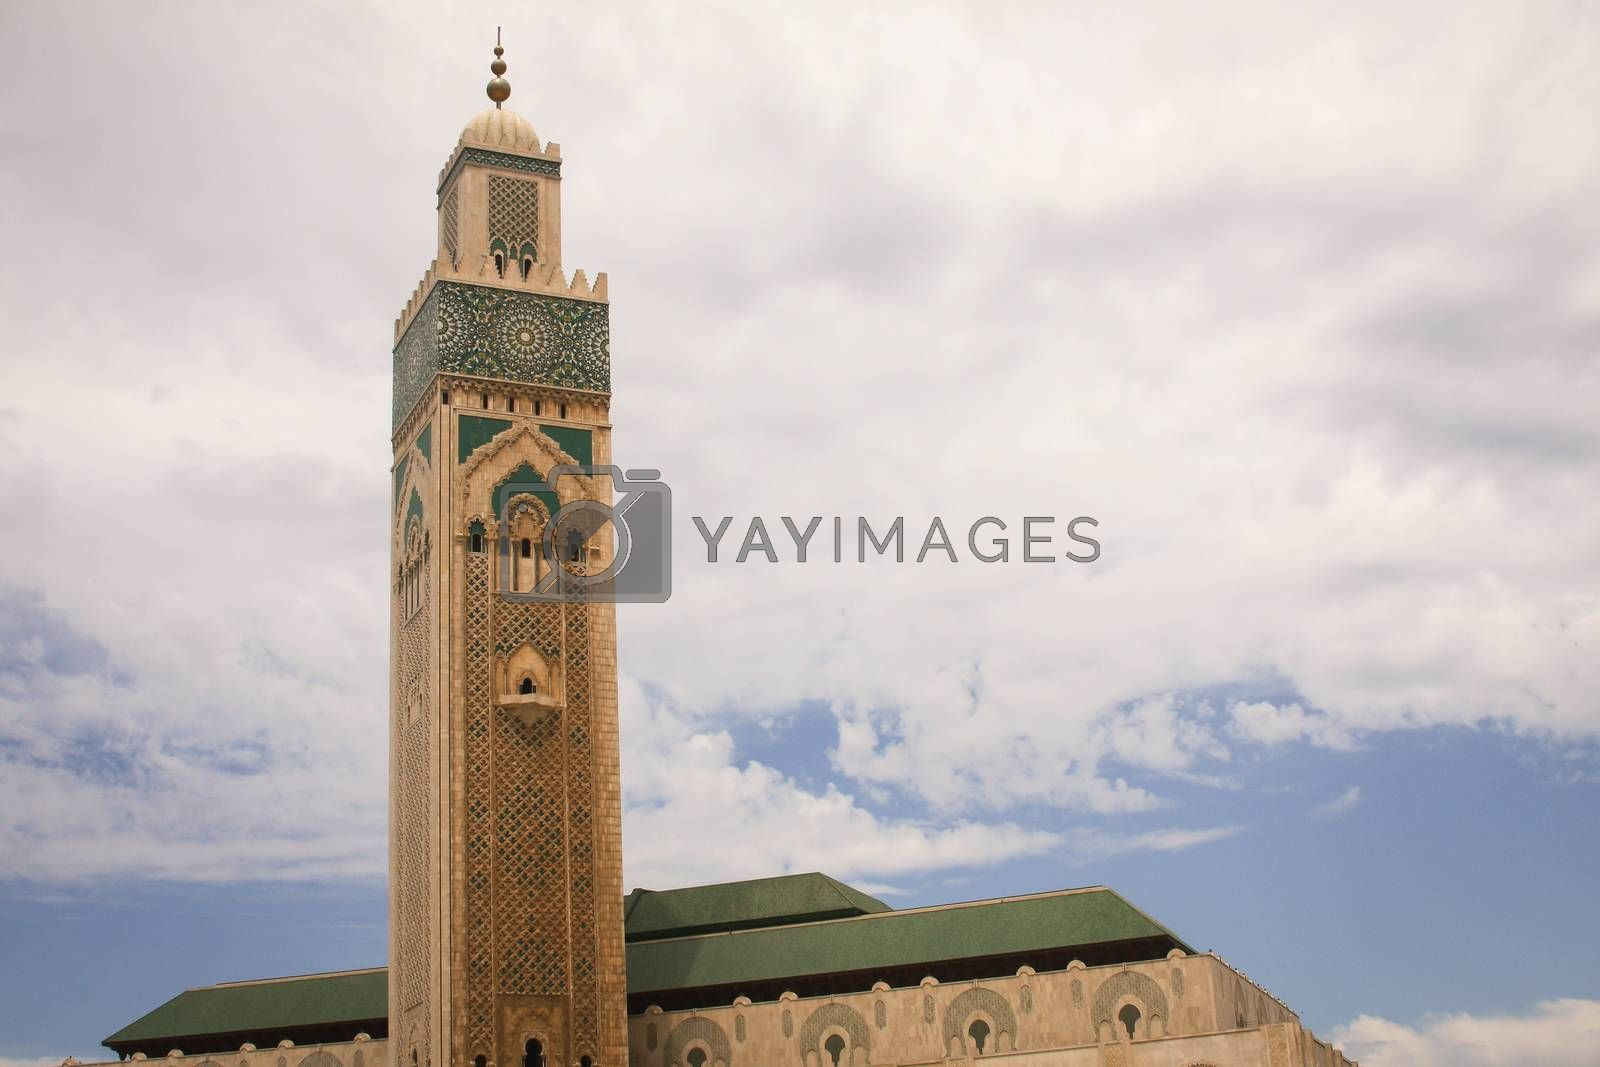 Royalty free image of Hassan II Mosque by betweenthecircles